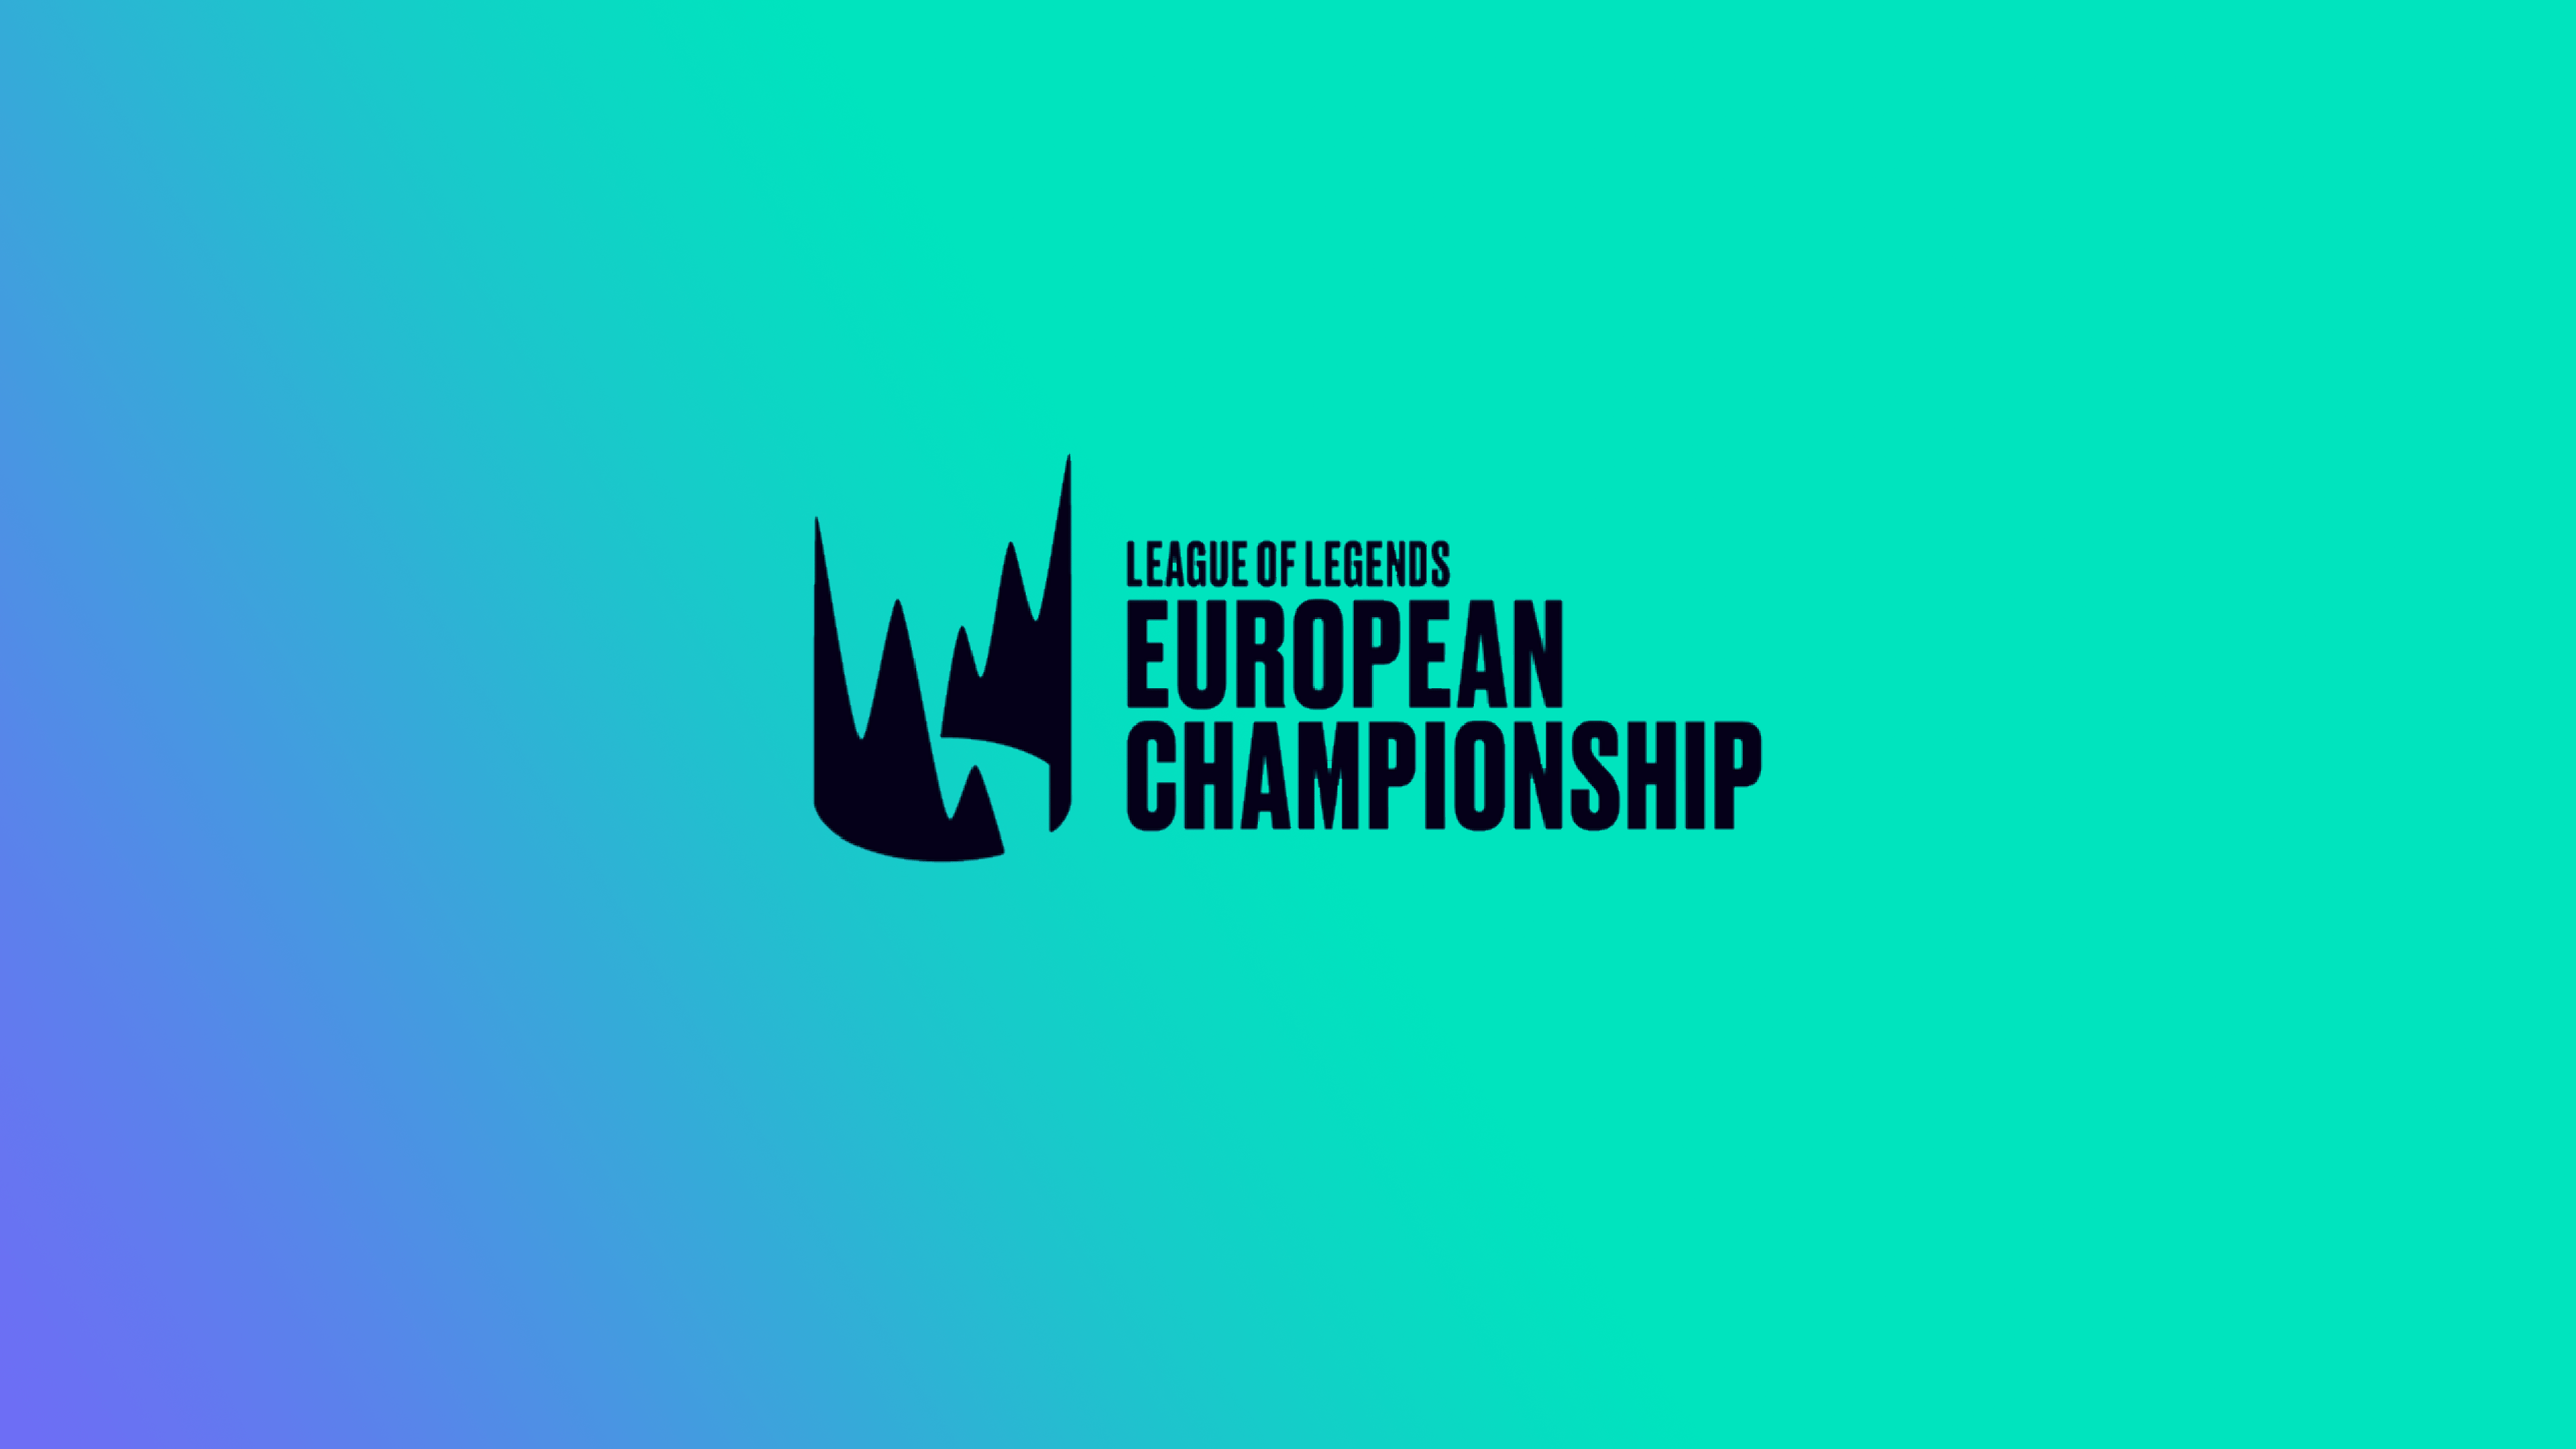 LEC – European Masters Have Partenered With HyperX And Volvic For The League Of Legends Broadcast